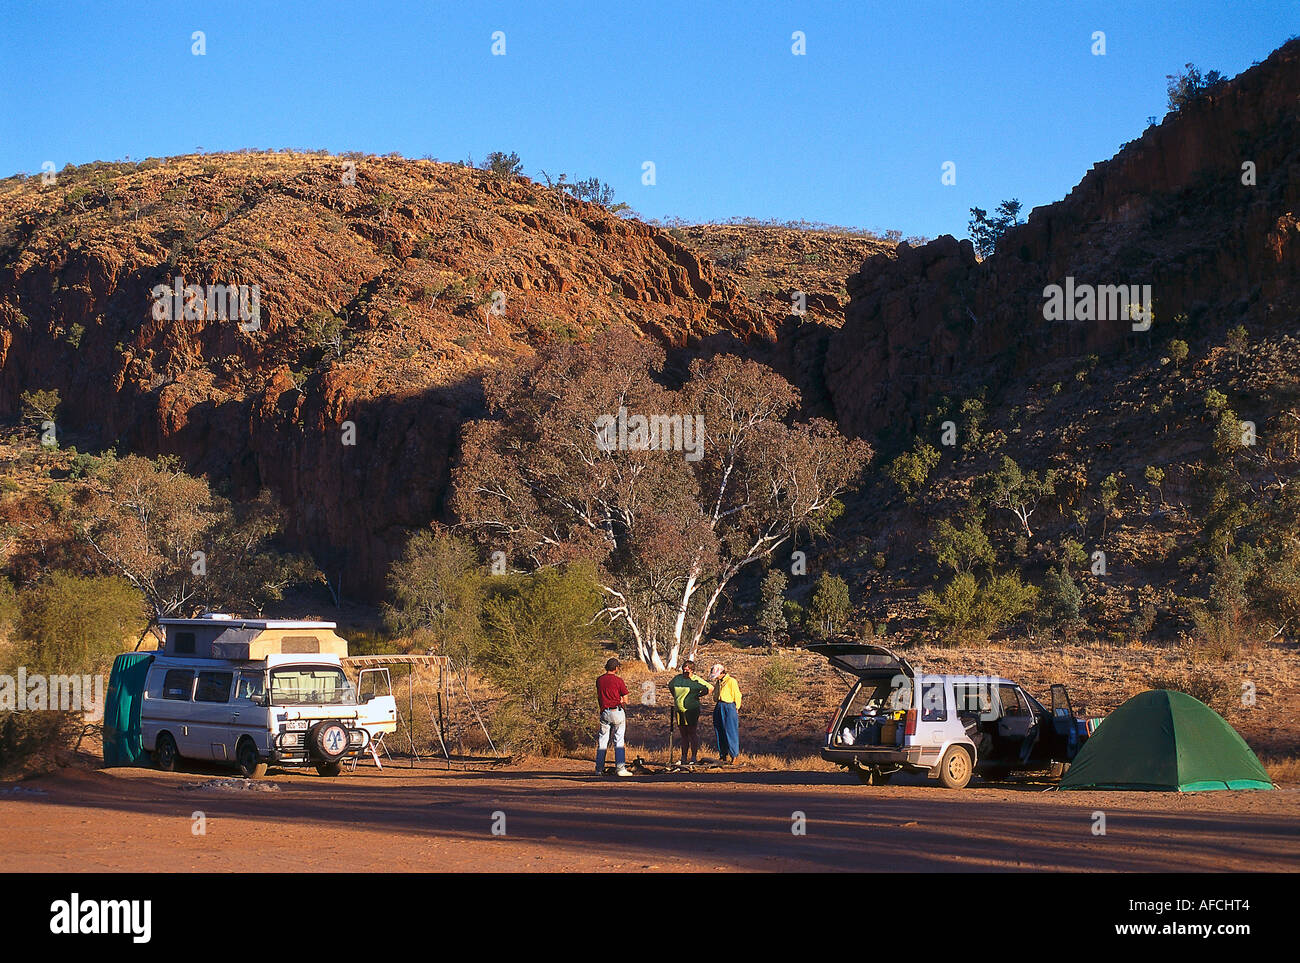 Campground at Glen Helen Gorge, West MacDonnell NP NT, Australia - Stock Image